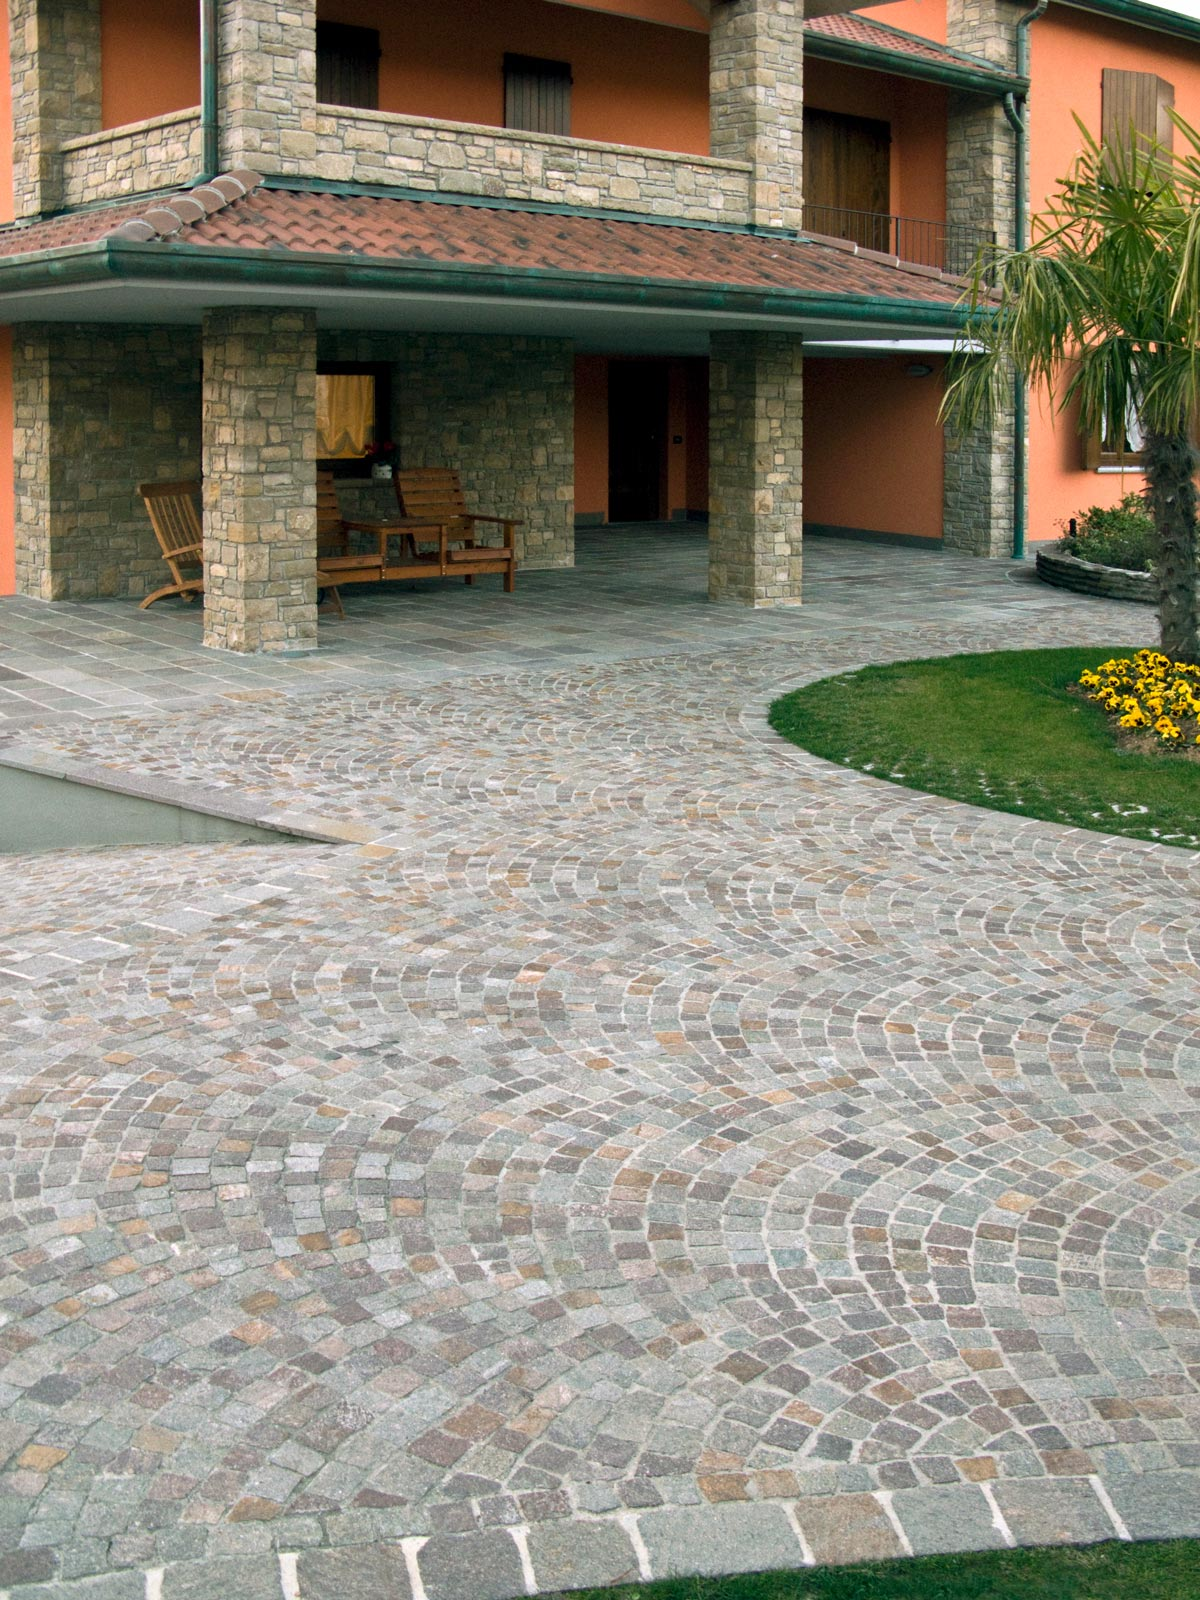 [43] Pavé sinuoso - homes, porphyry, grey and purple porphyry, pavé, ramps accessible by vehicles